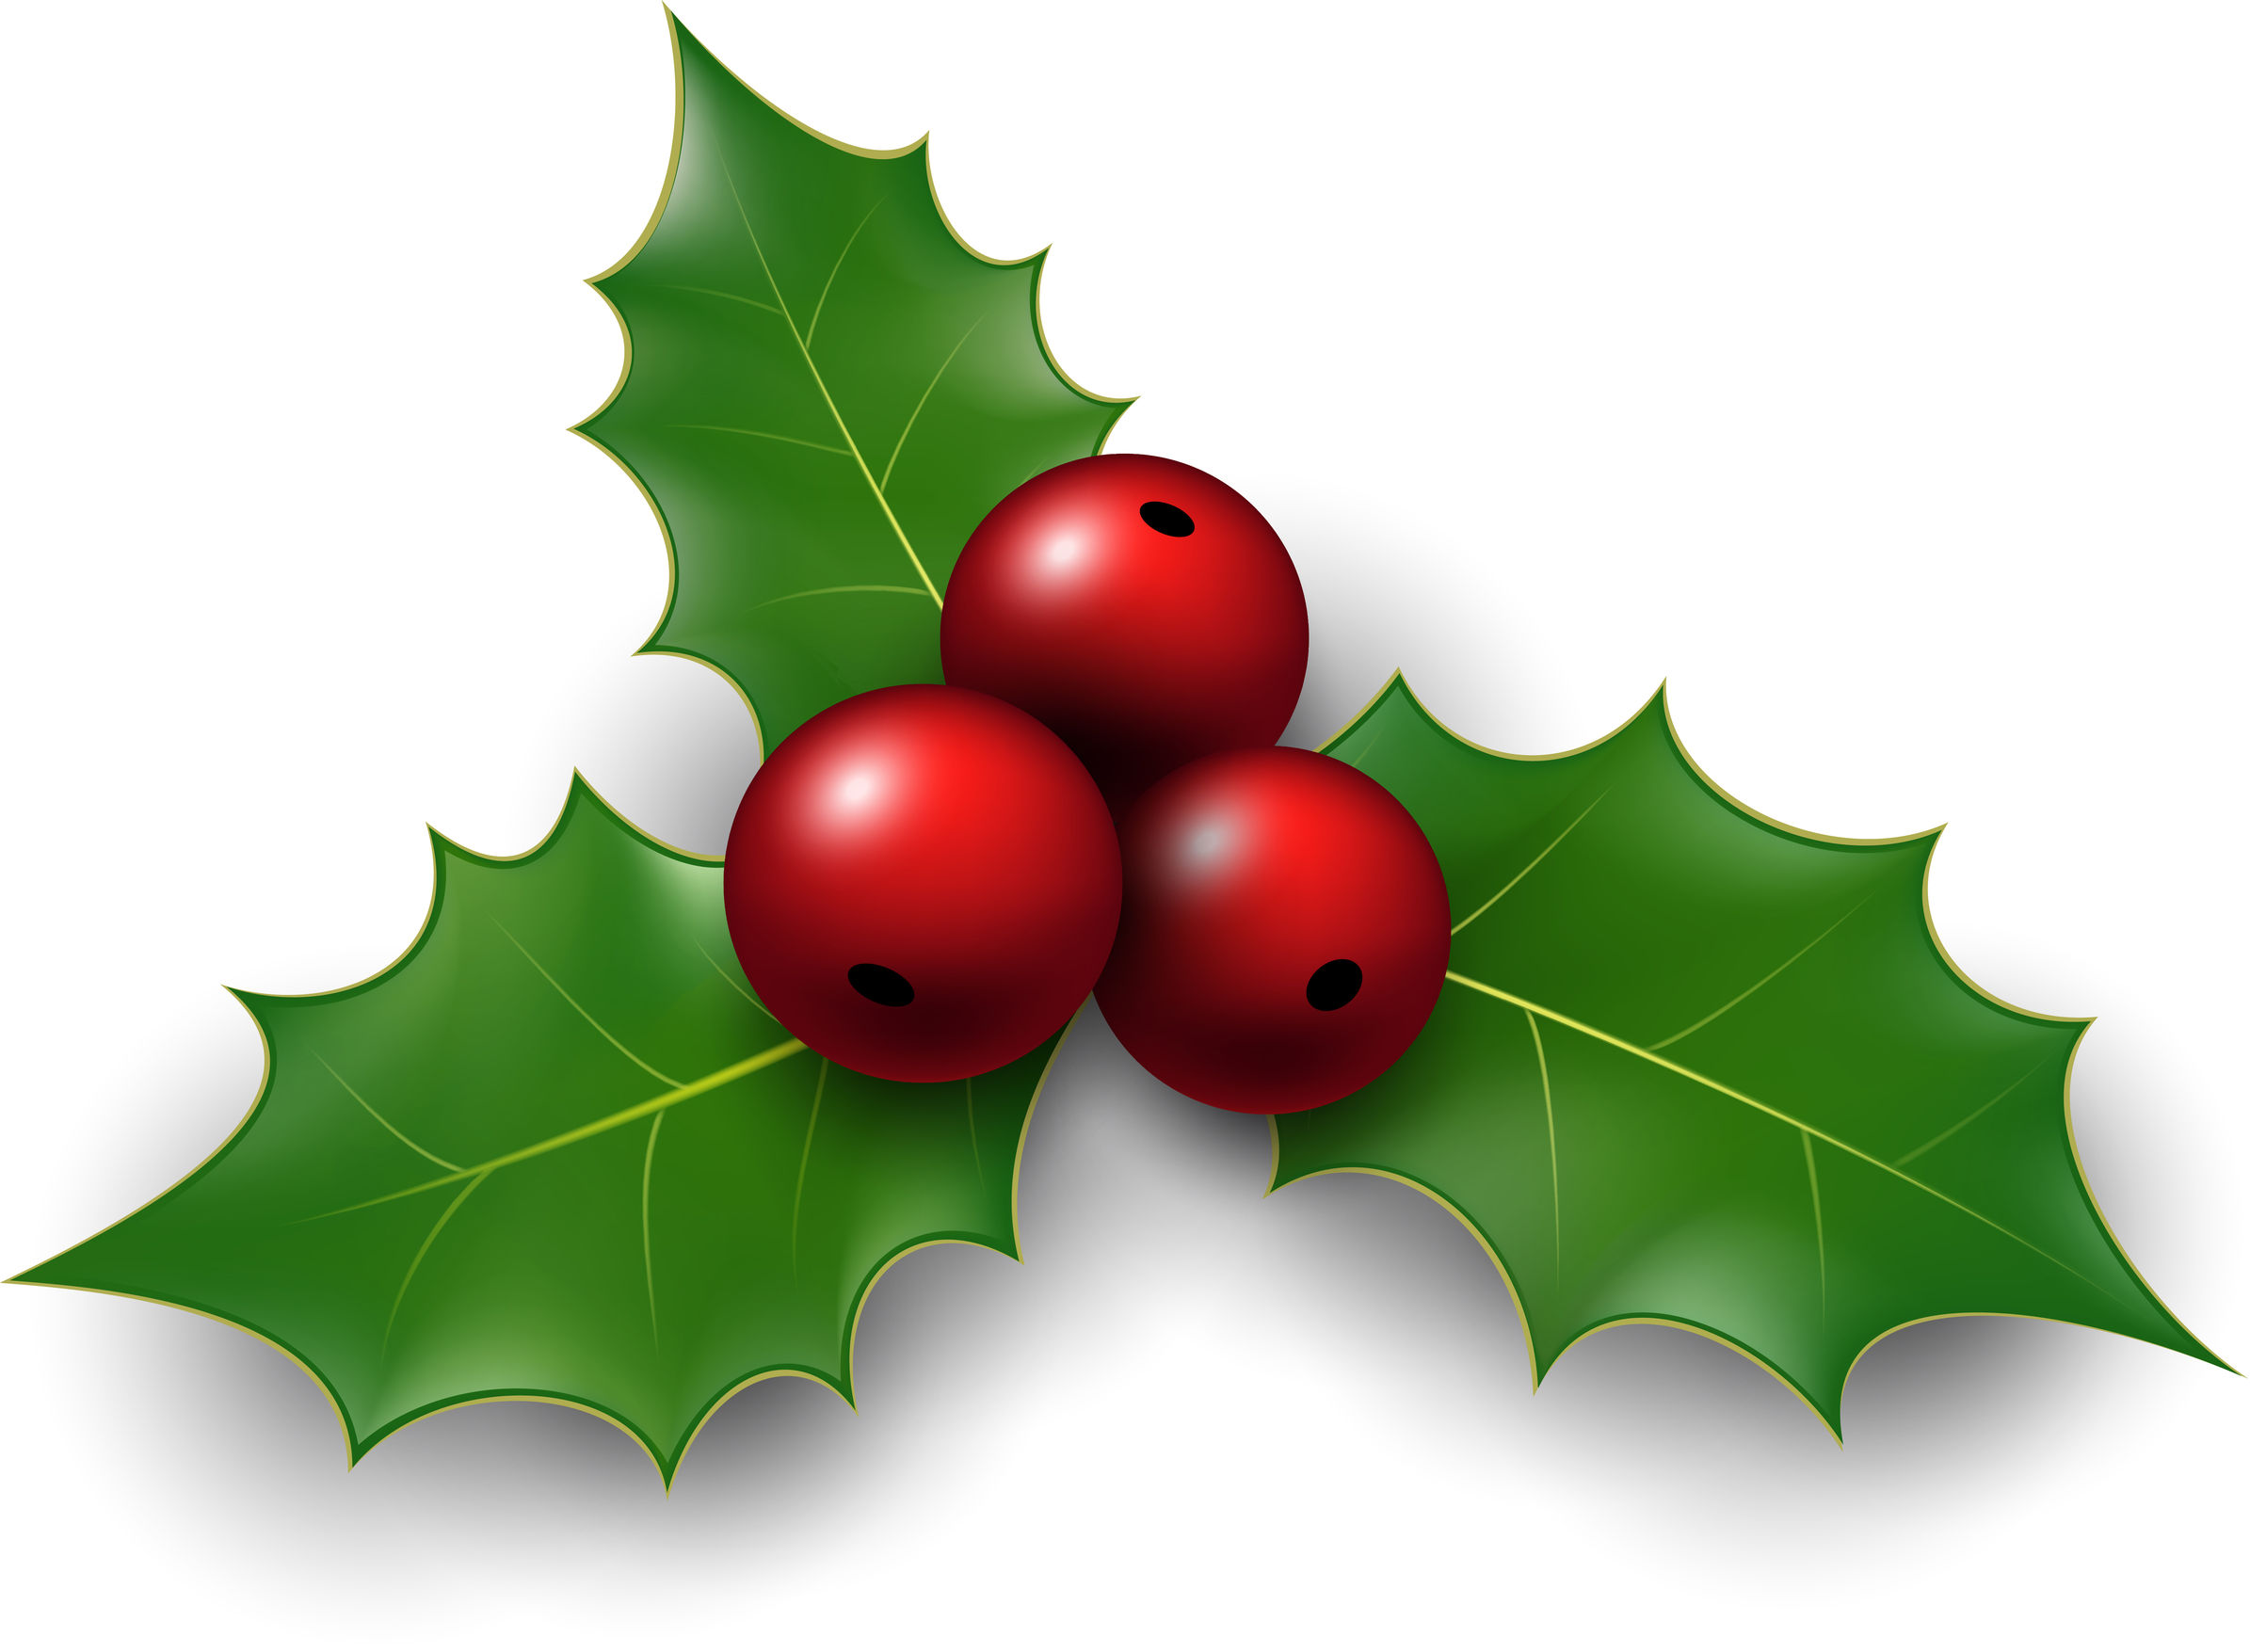 34593179 – twig of holly with berry and leaves. vector illustration.